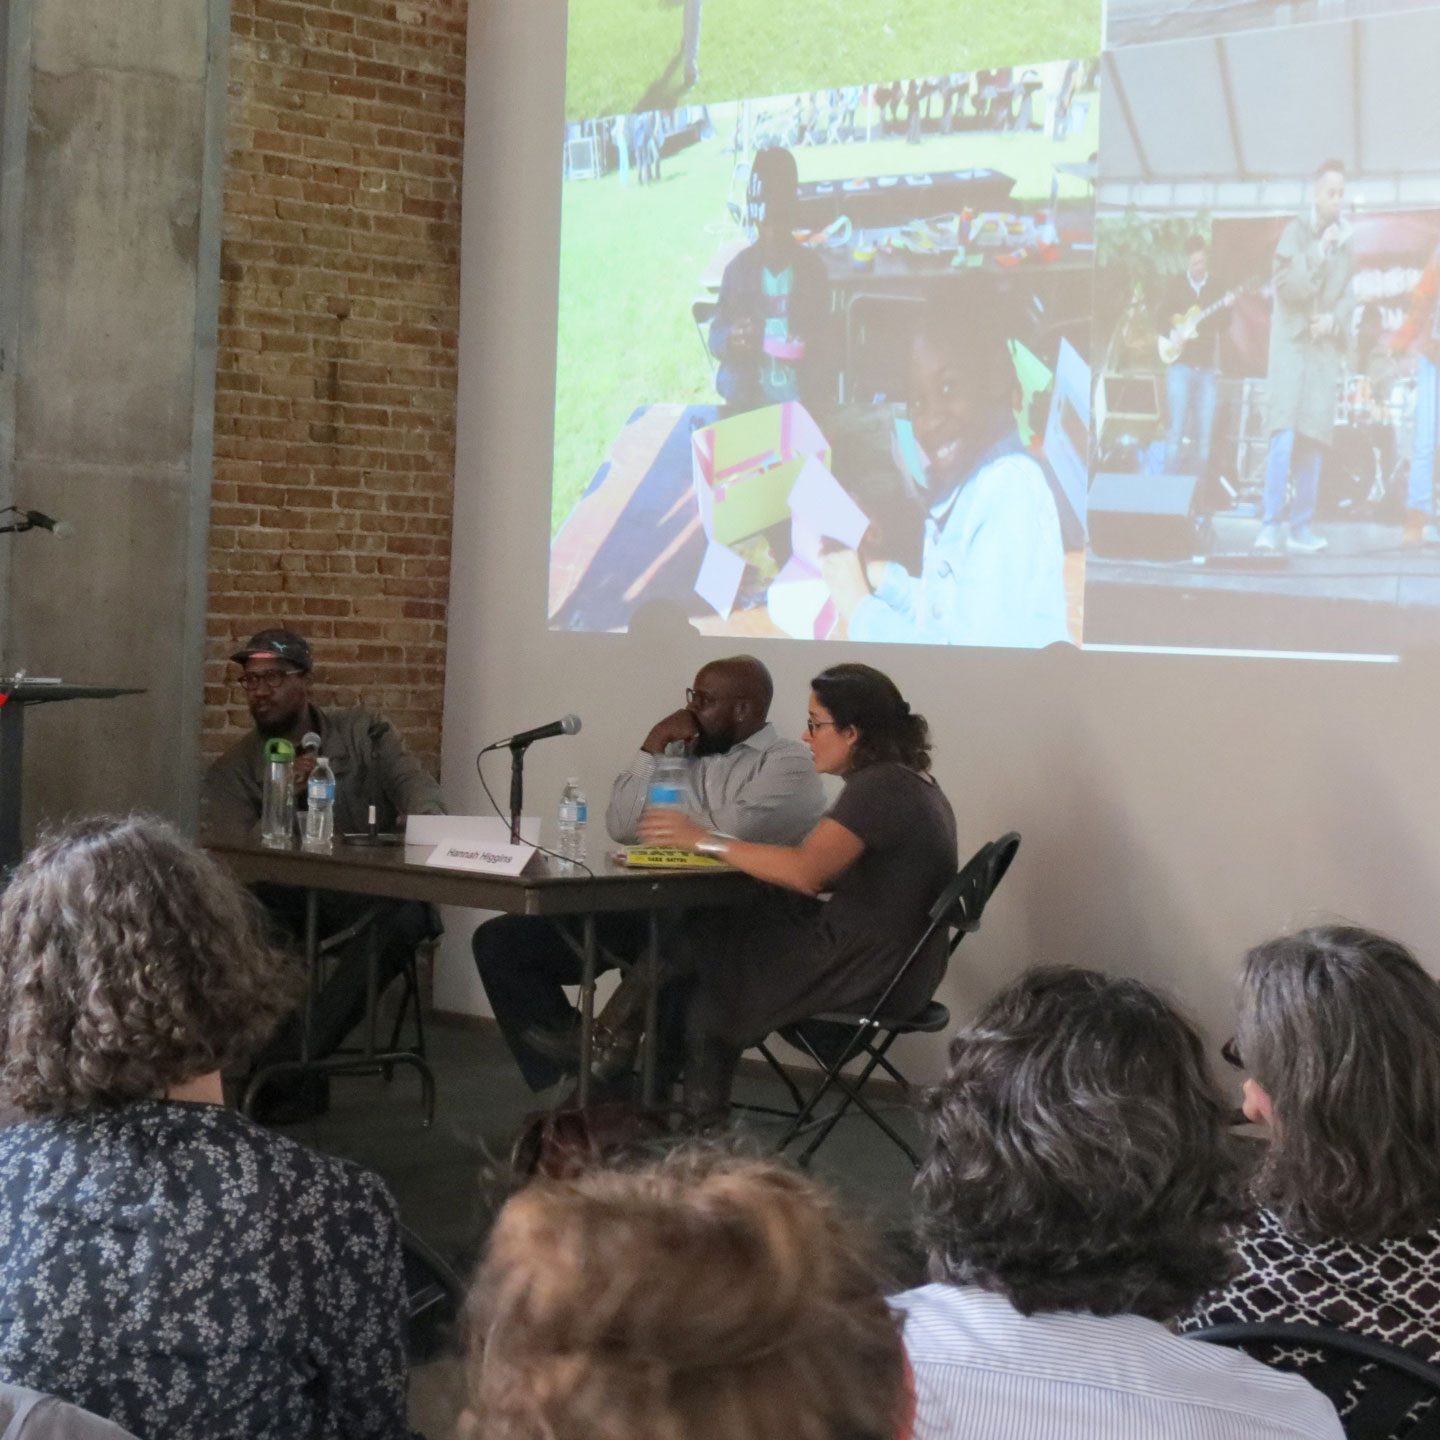 panelists in discussion at the Salvage 3.0 symposium